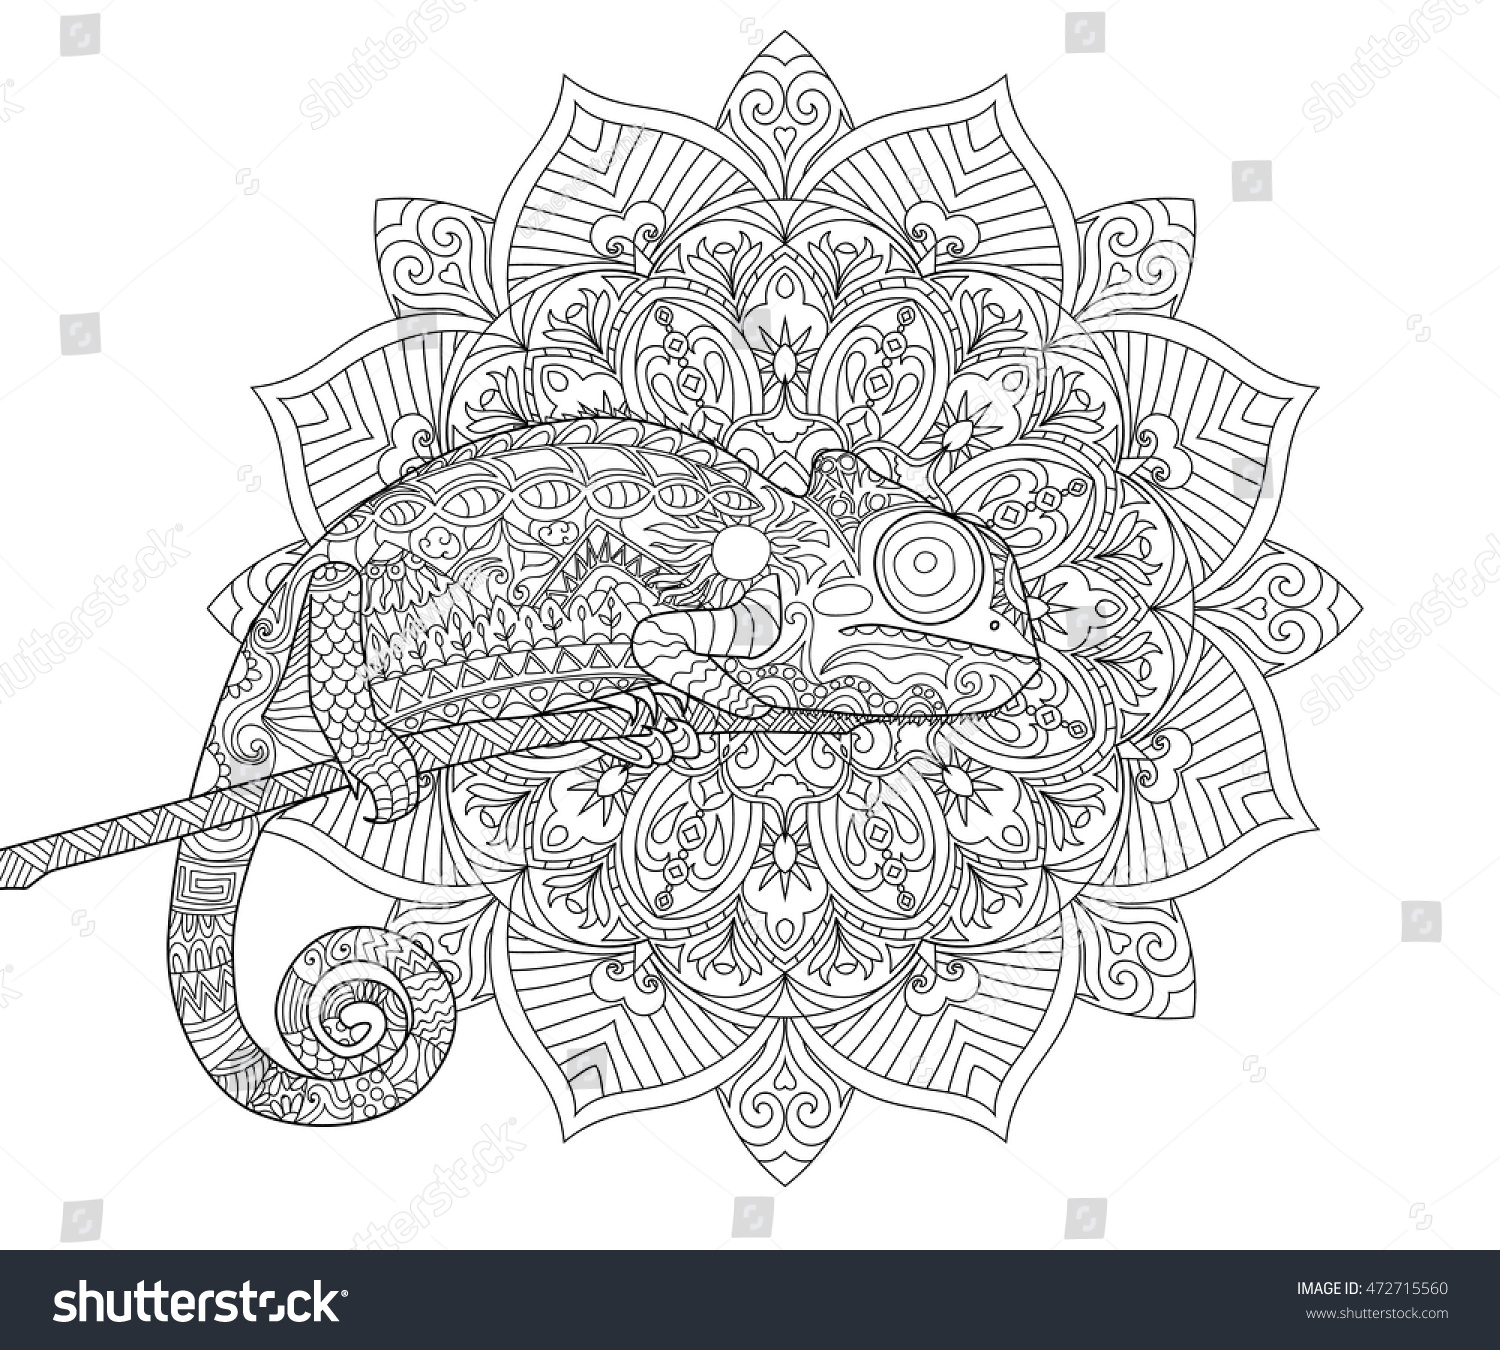 Chameleon For Adult Antistress Coloring Page Black And White Hand Drawn Doodle Book